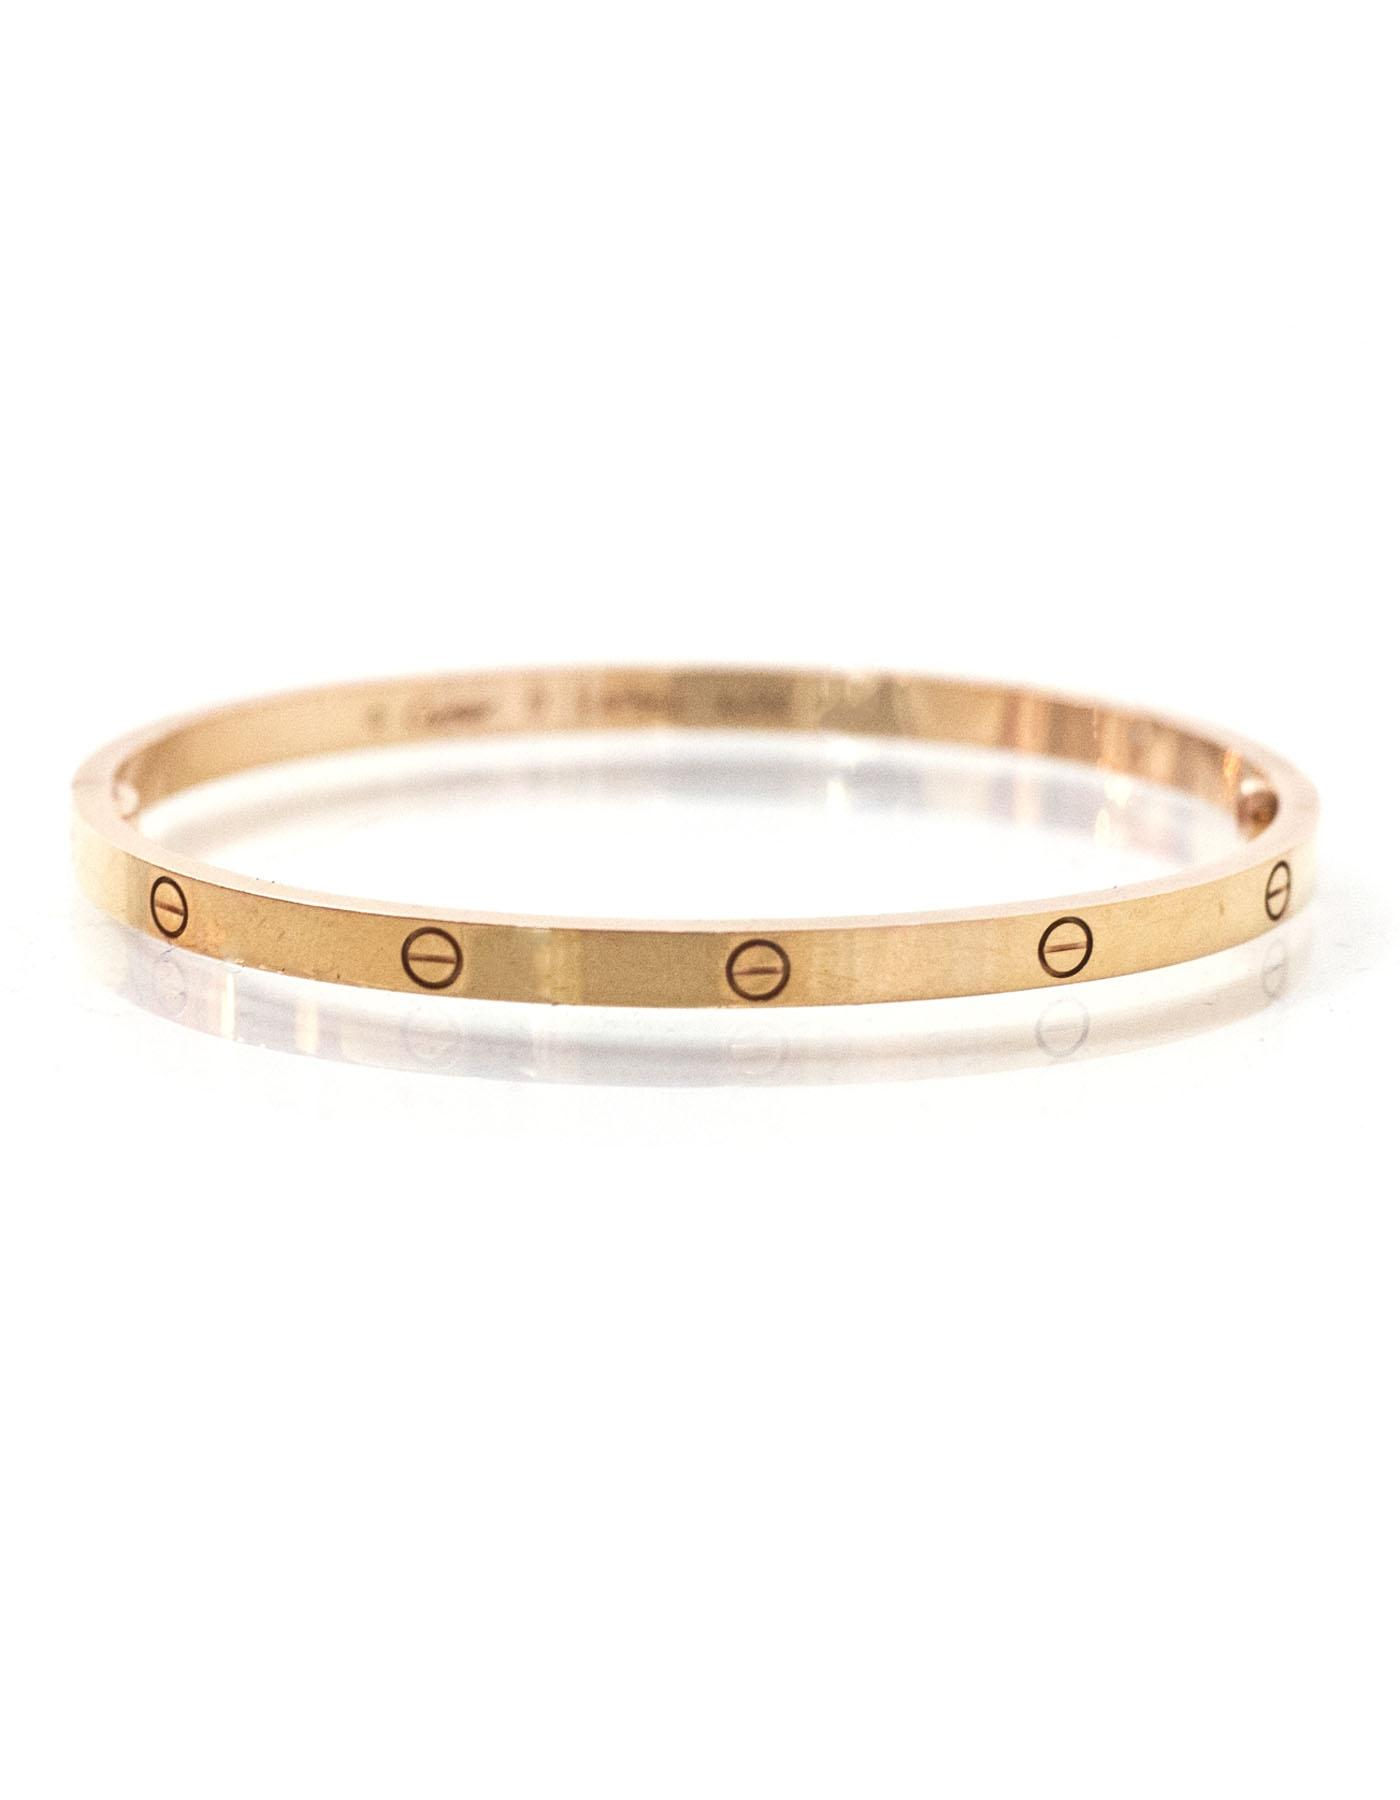 Cartier Pink Rose Gold Small Love with Box Case Bracelet Tradesy